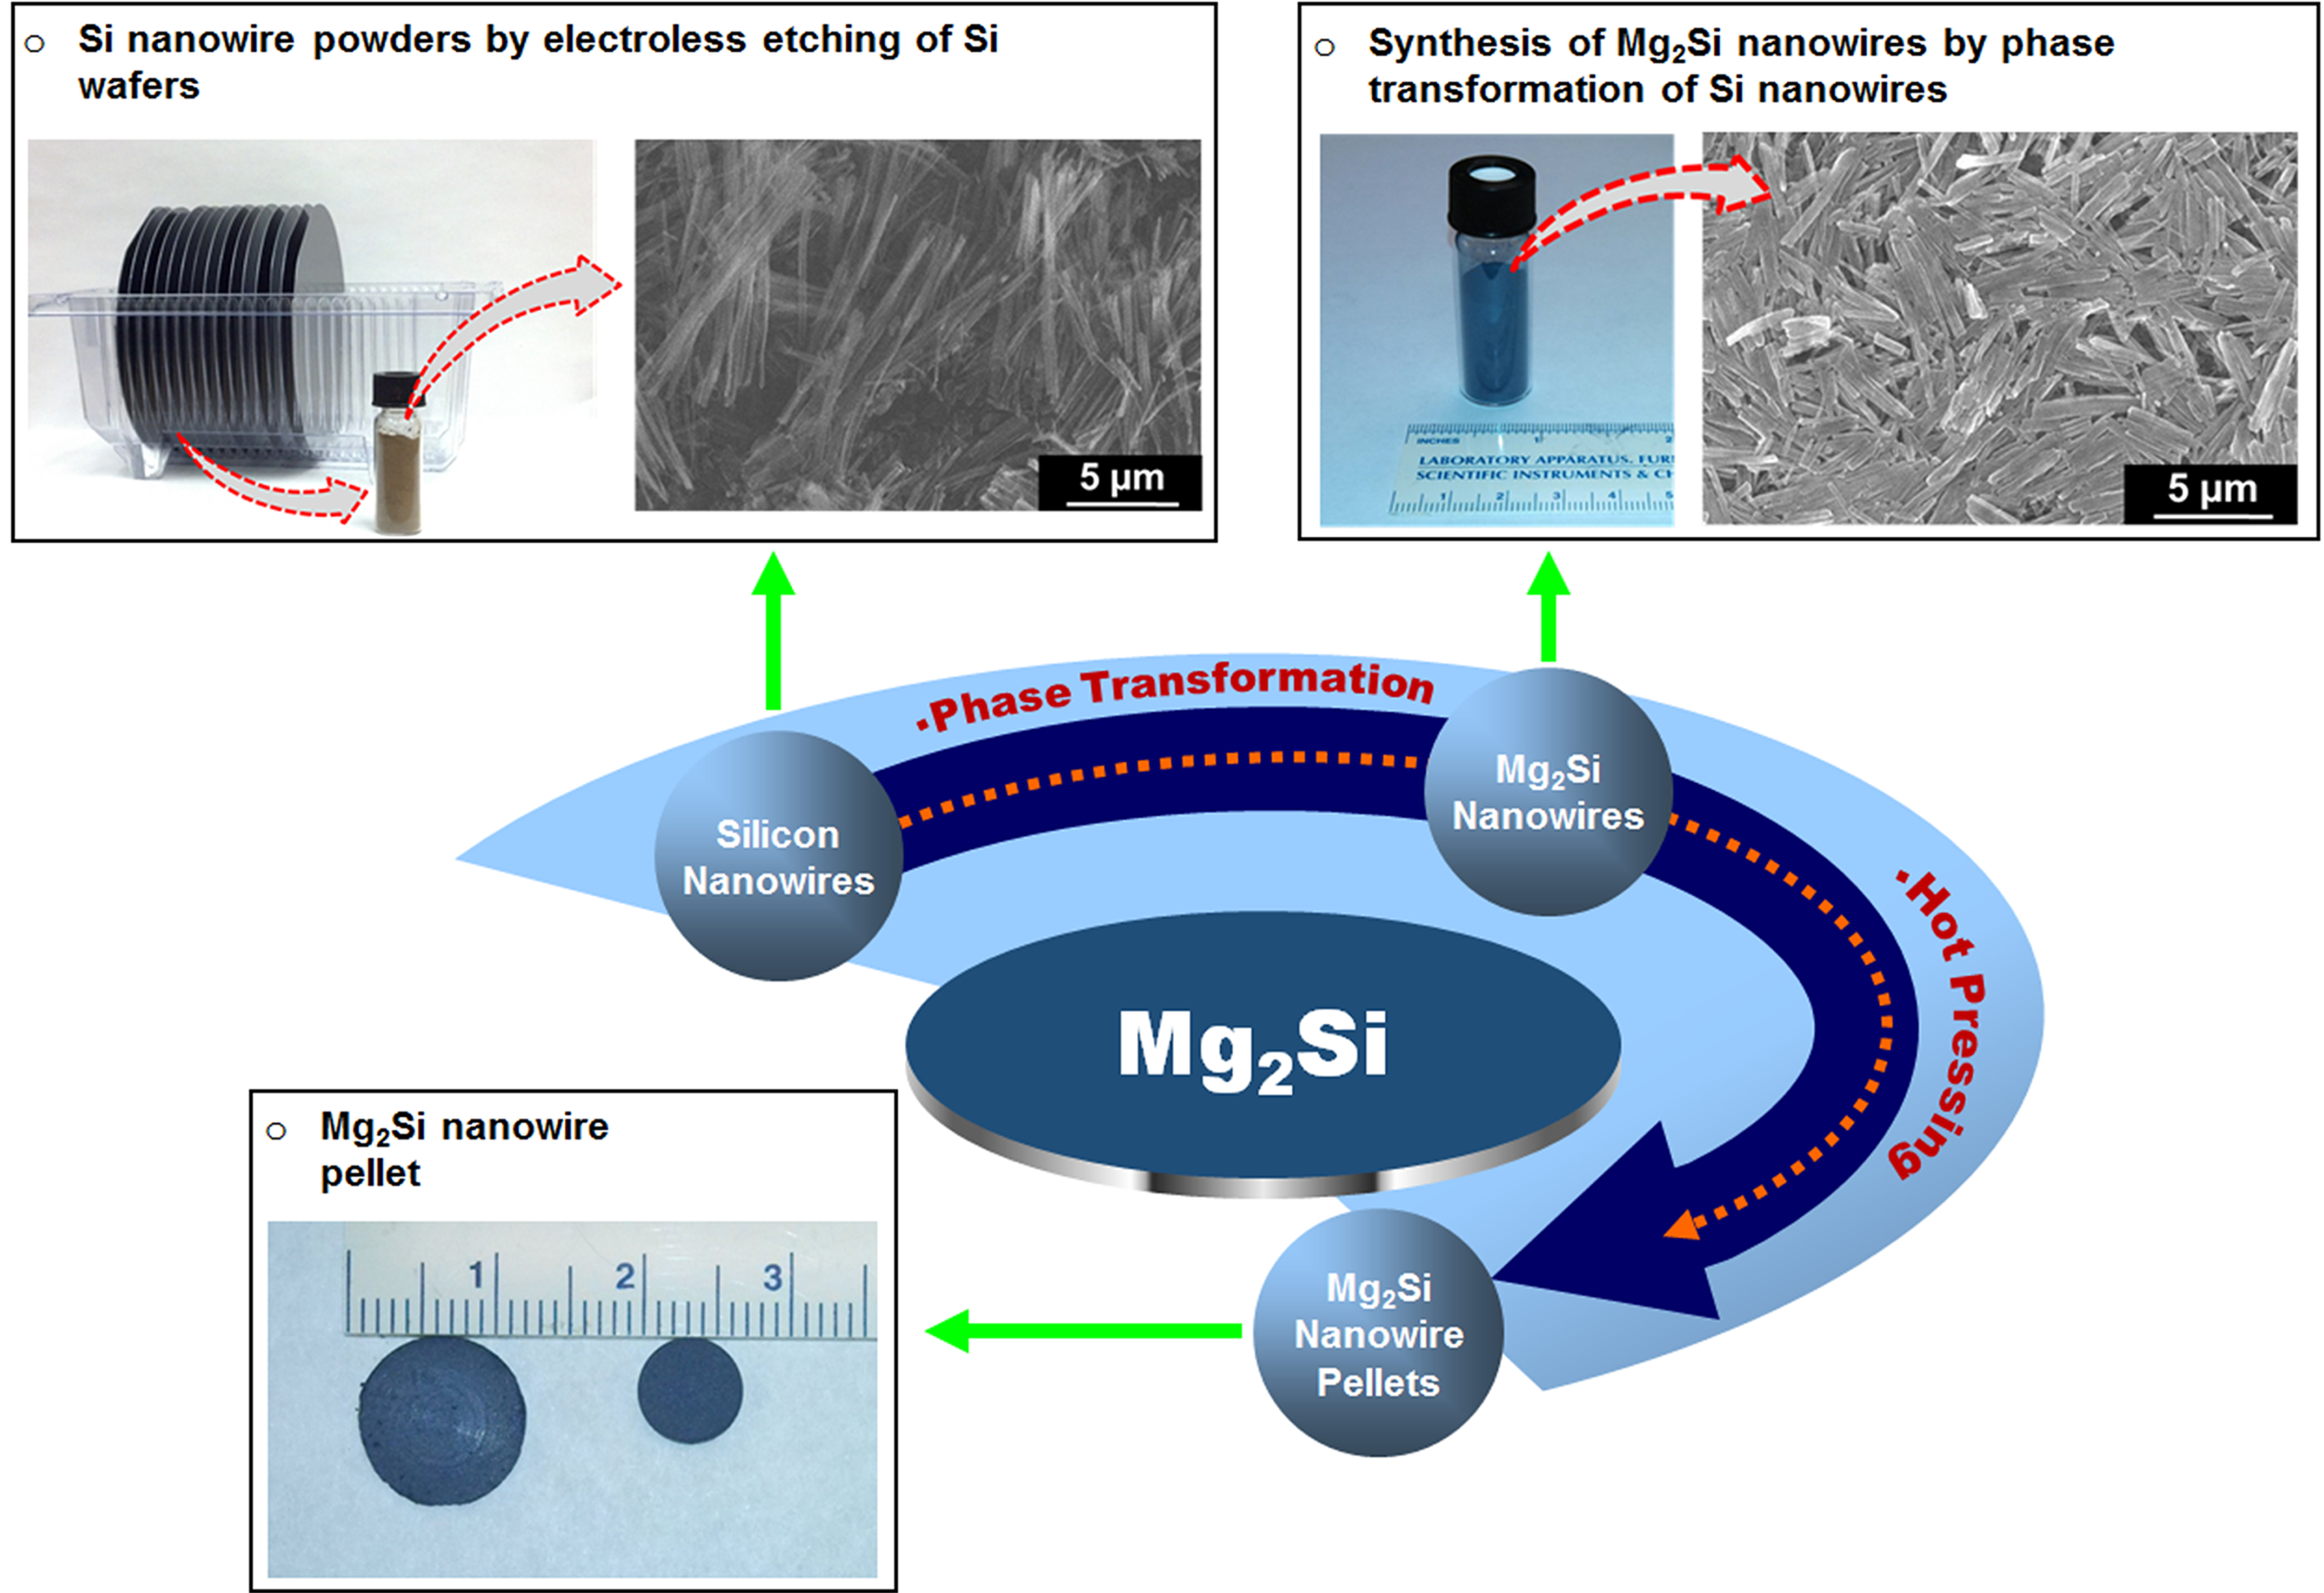 A schematic representing mass production of silicon nanowires via electroless etching and phase transformation of these silicon nanowires to magnesium silicide nanowires. Their assembly into macro pellets for use in thermoelectric modules is also shown.